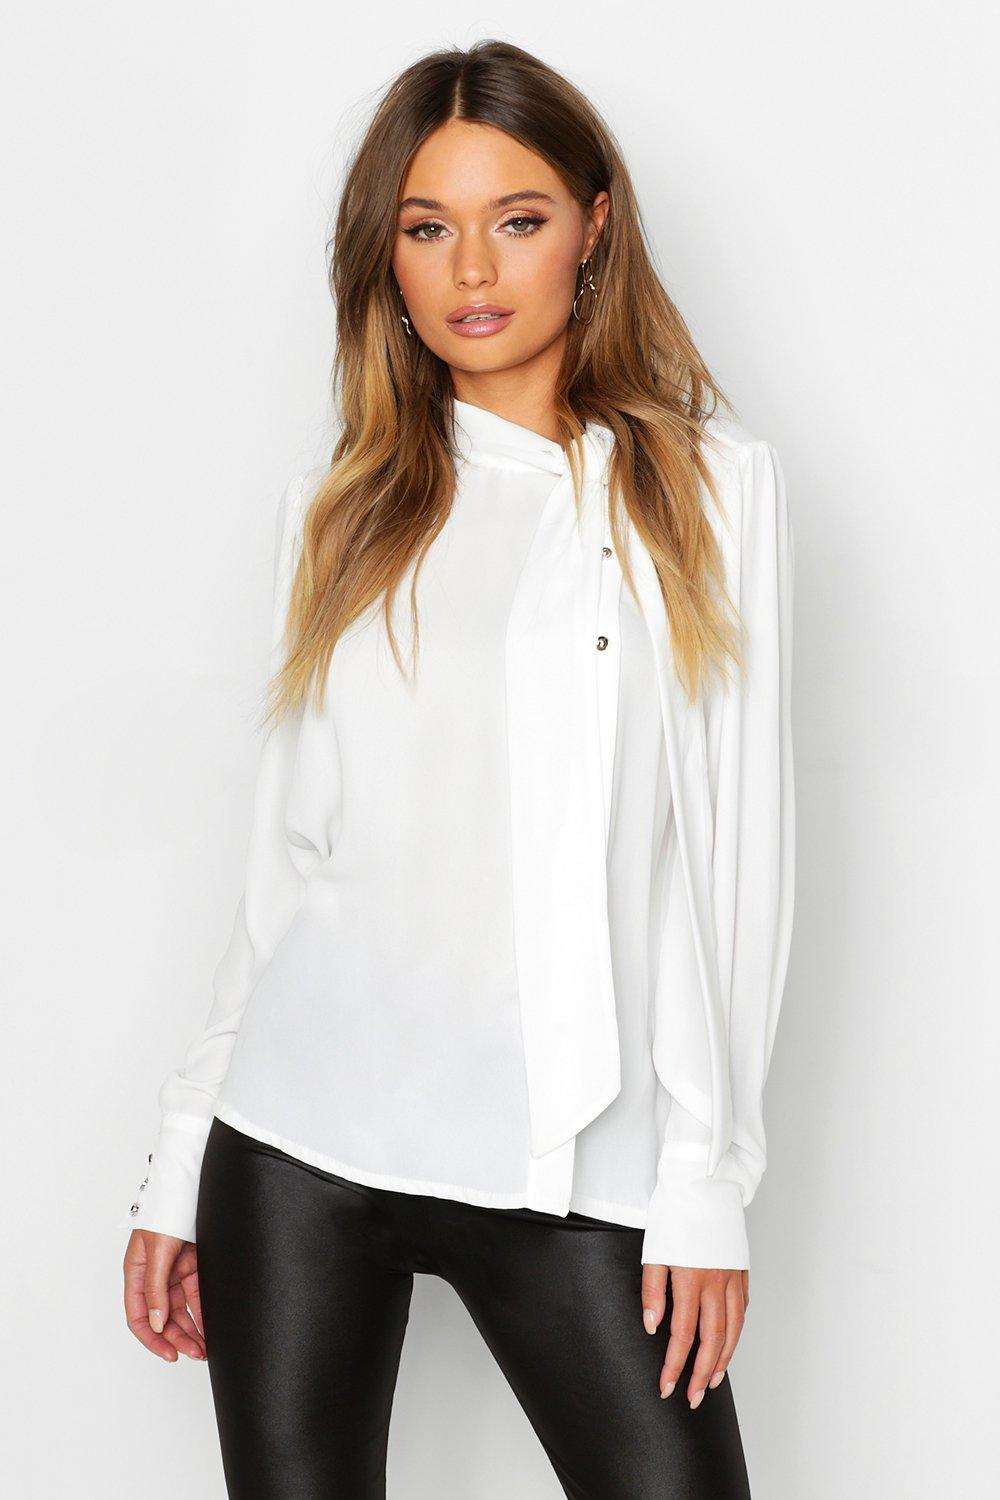 5492907a344dd Woven Tie Neck Button Detail Blouse. Hover to zoom